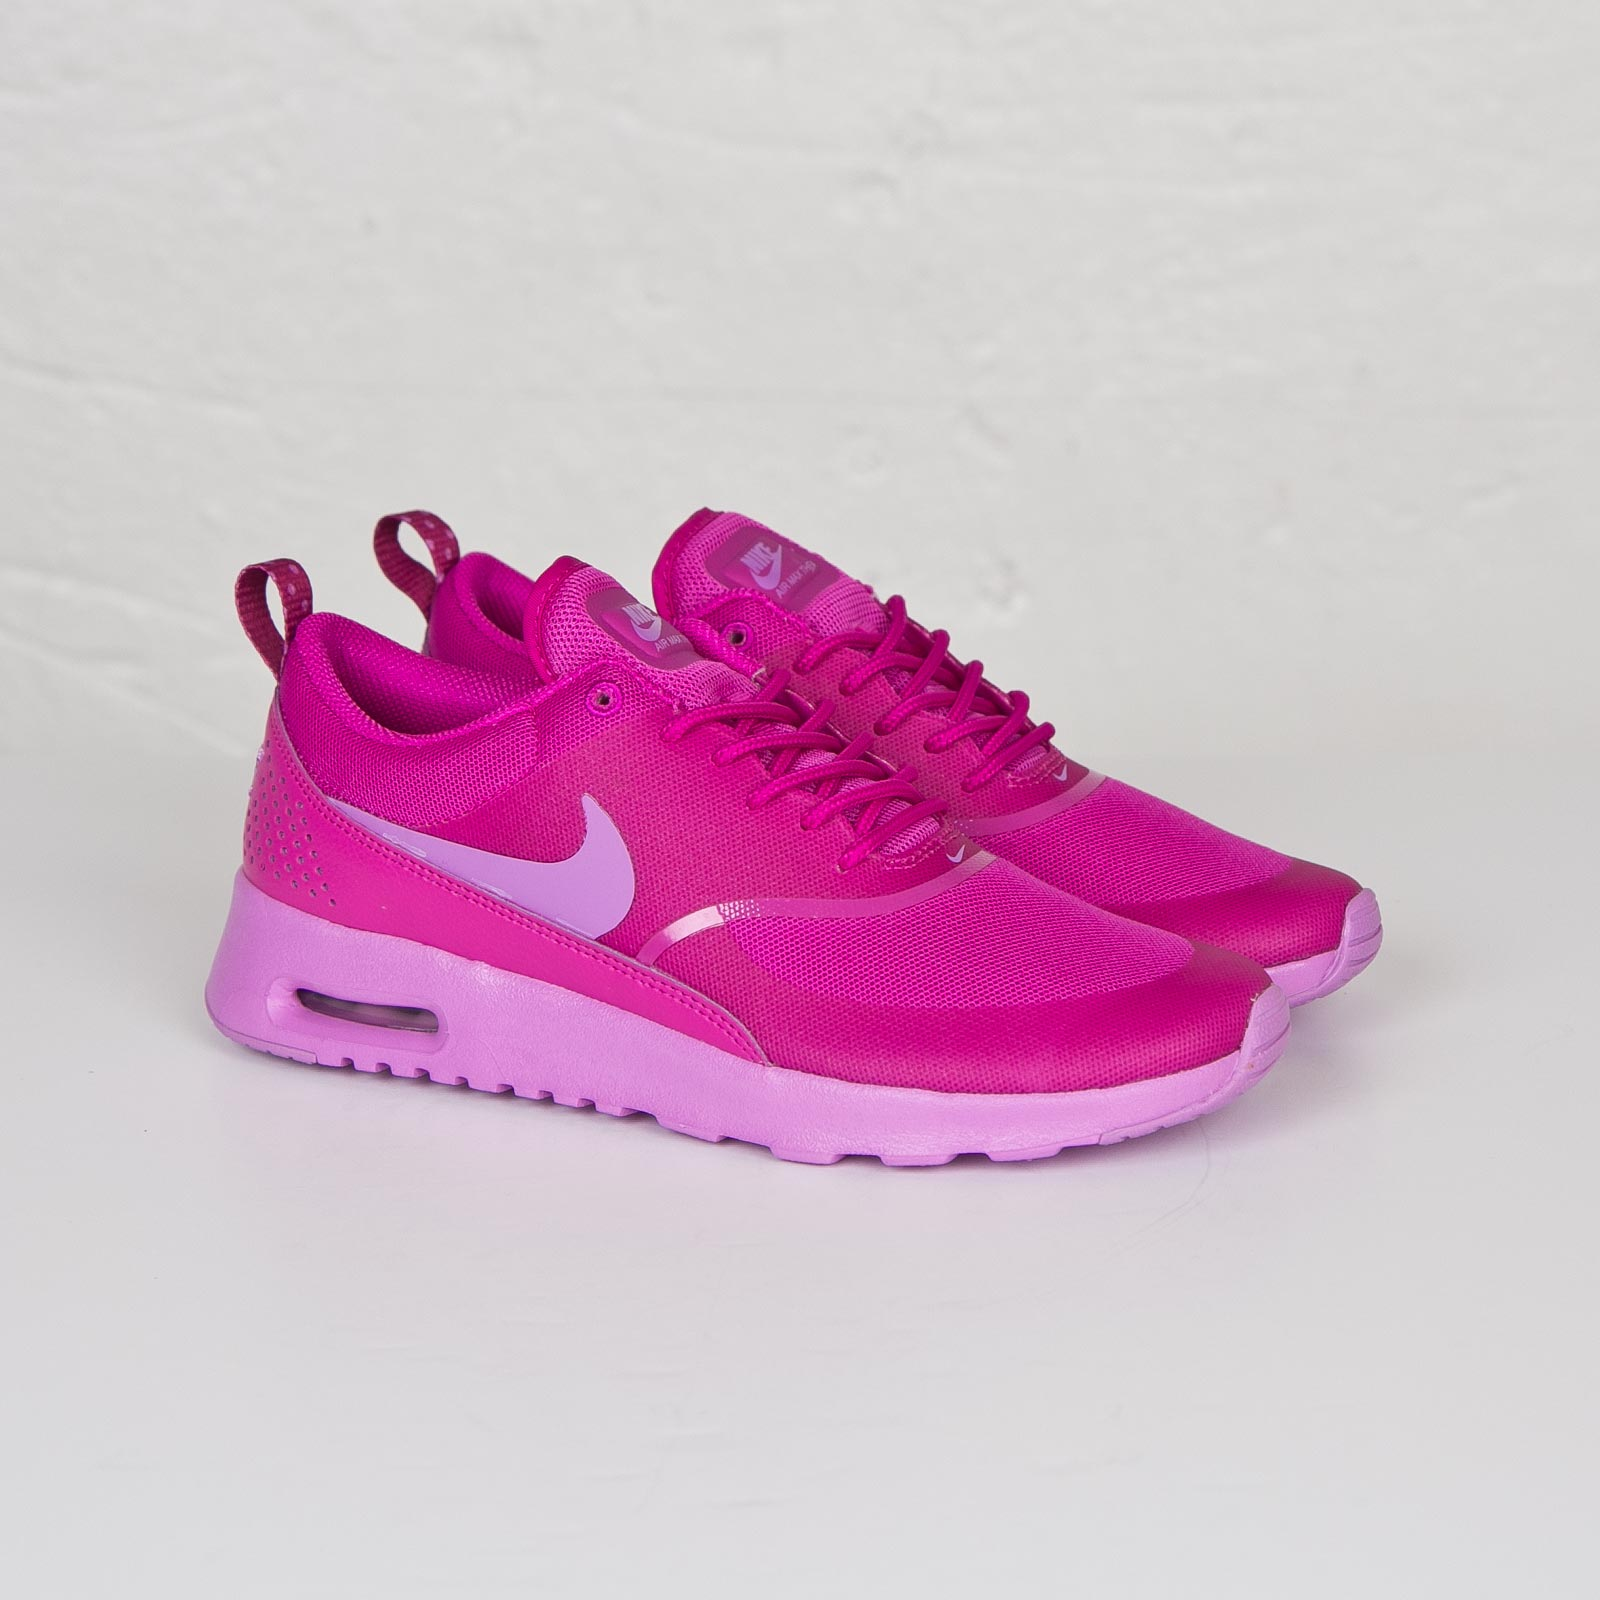 Nike Wmns Air Max Thea 599409 502 Sneakersnstuff